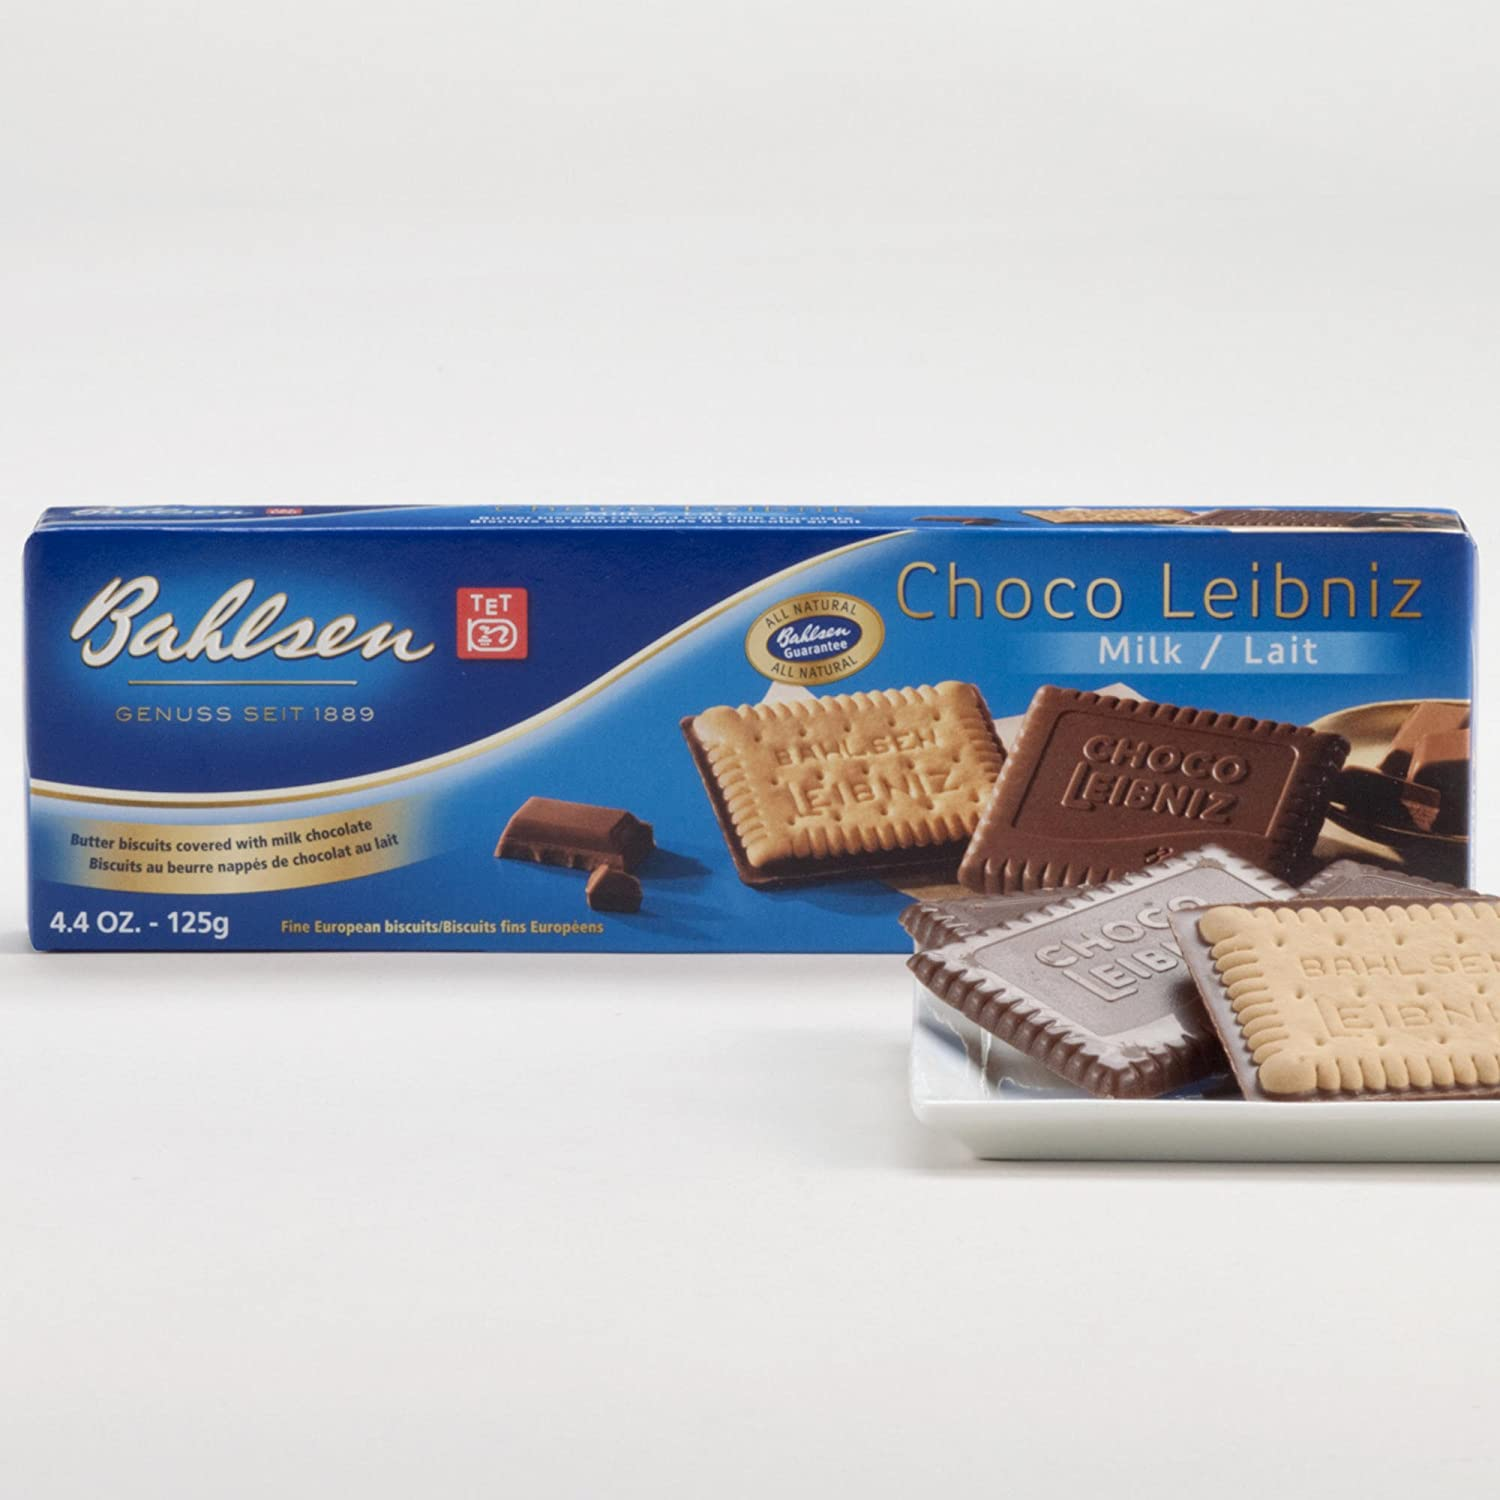 Bahlsen Max 68% OFF Leibniz Milk Chocolate Cookies Ranking integrated 1st place 4.4 Pack OZ of 3